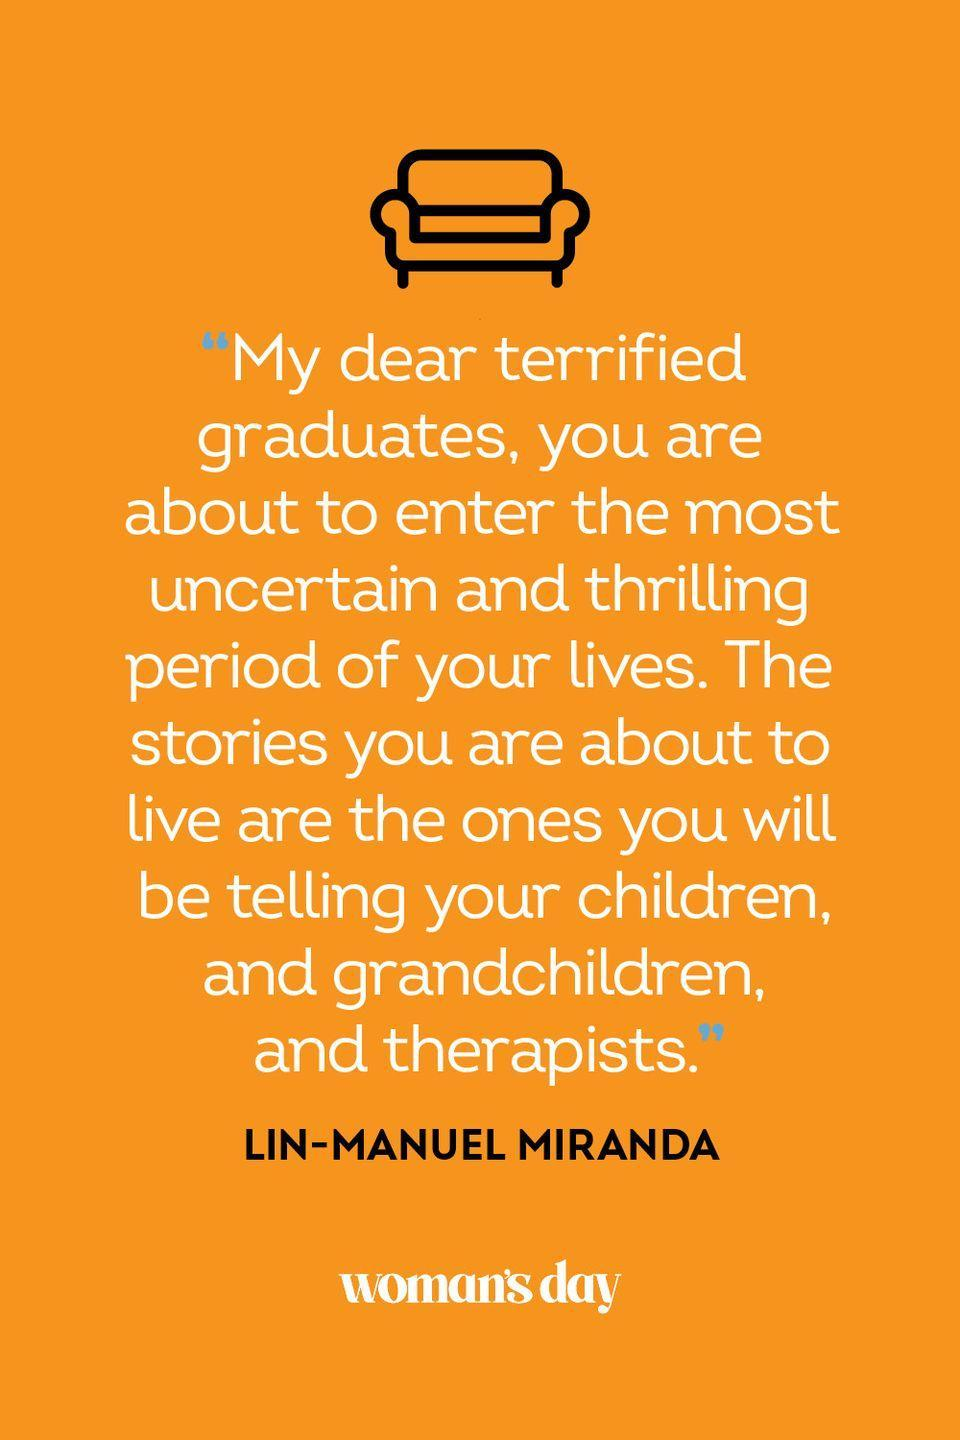 """<p>""""My dear terrified graduates, you are about to enter the most uncertain and thrilling period of your lives. The stories you are about to live are the ones you will be telling your children, and grandchildren, and therapists.""""</p>"""